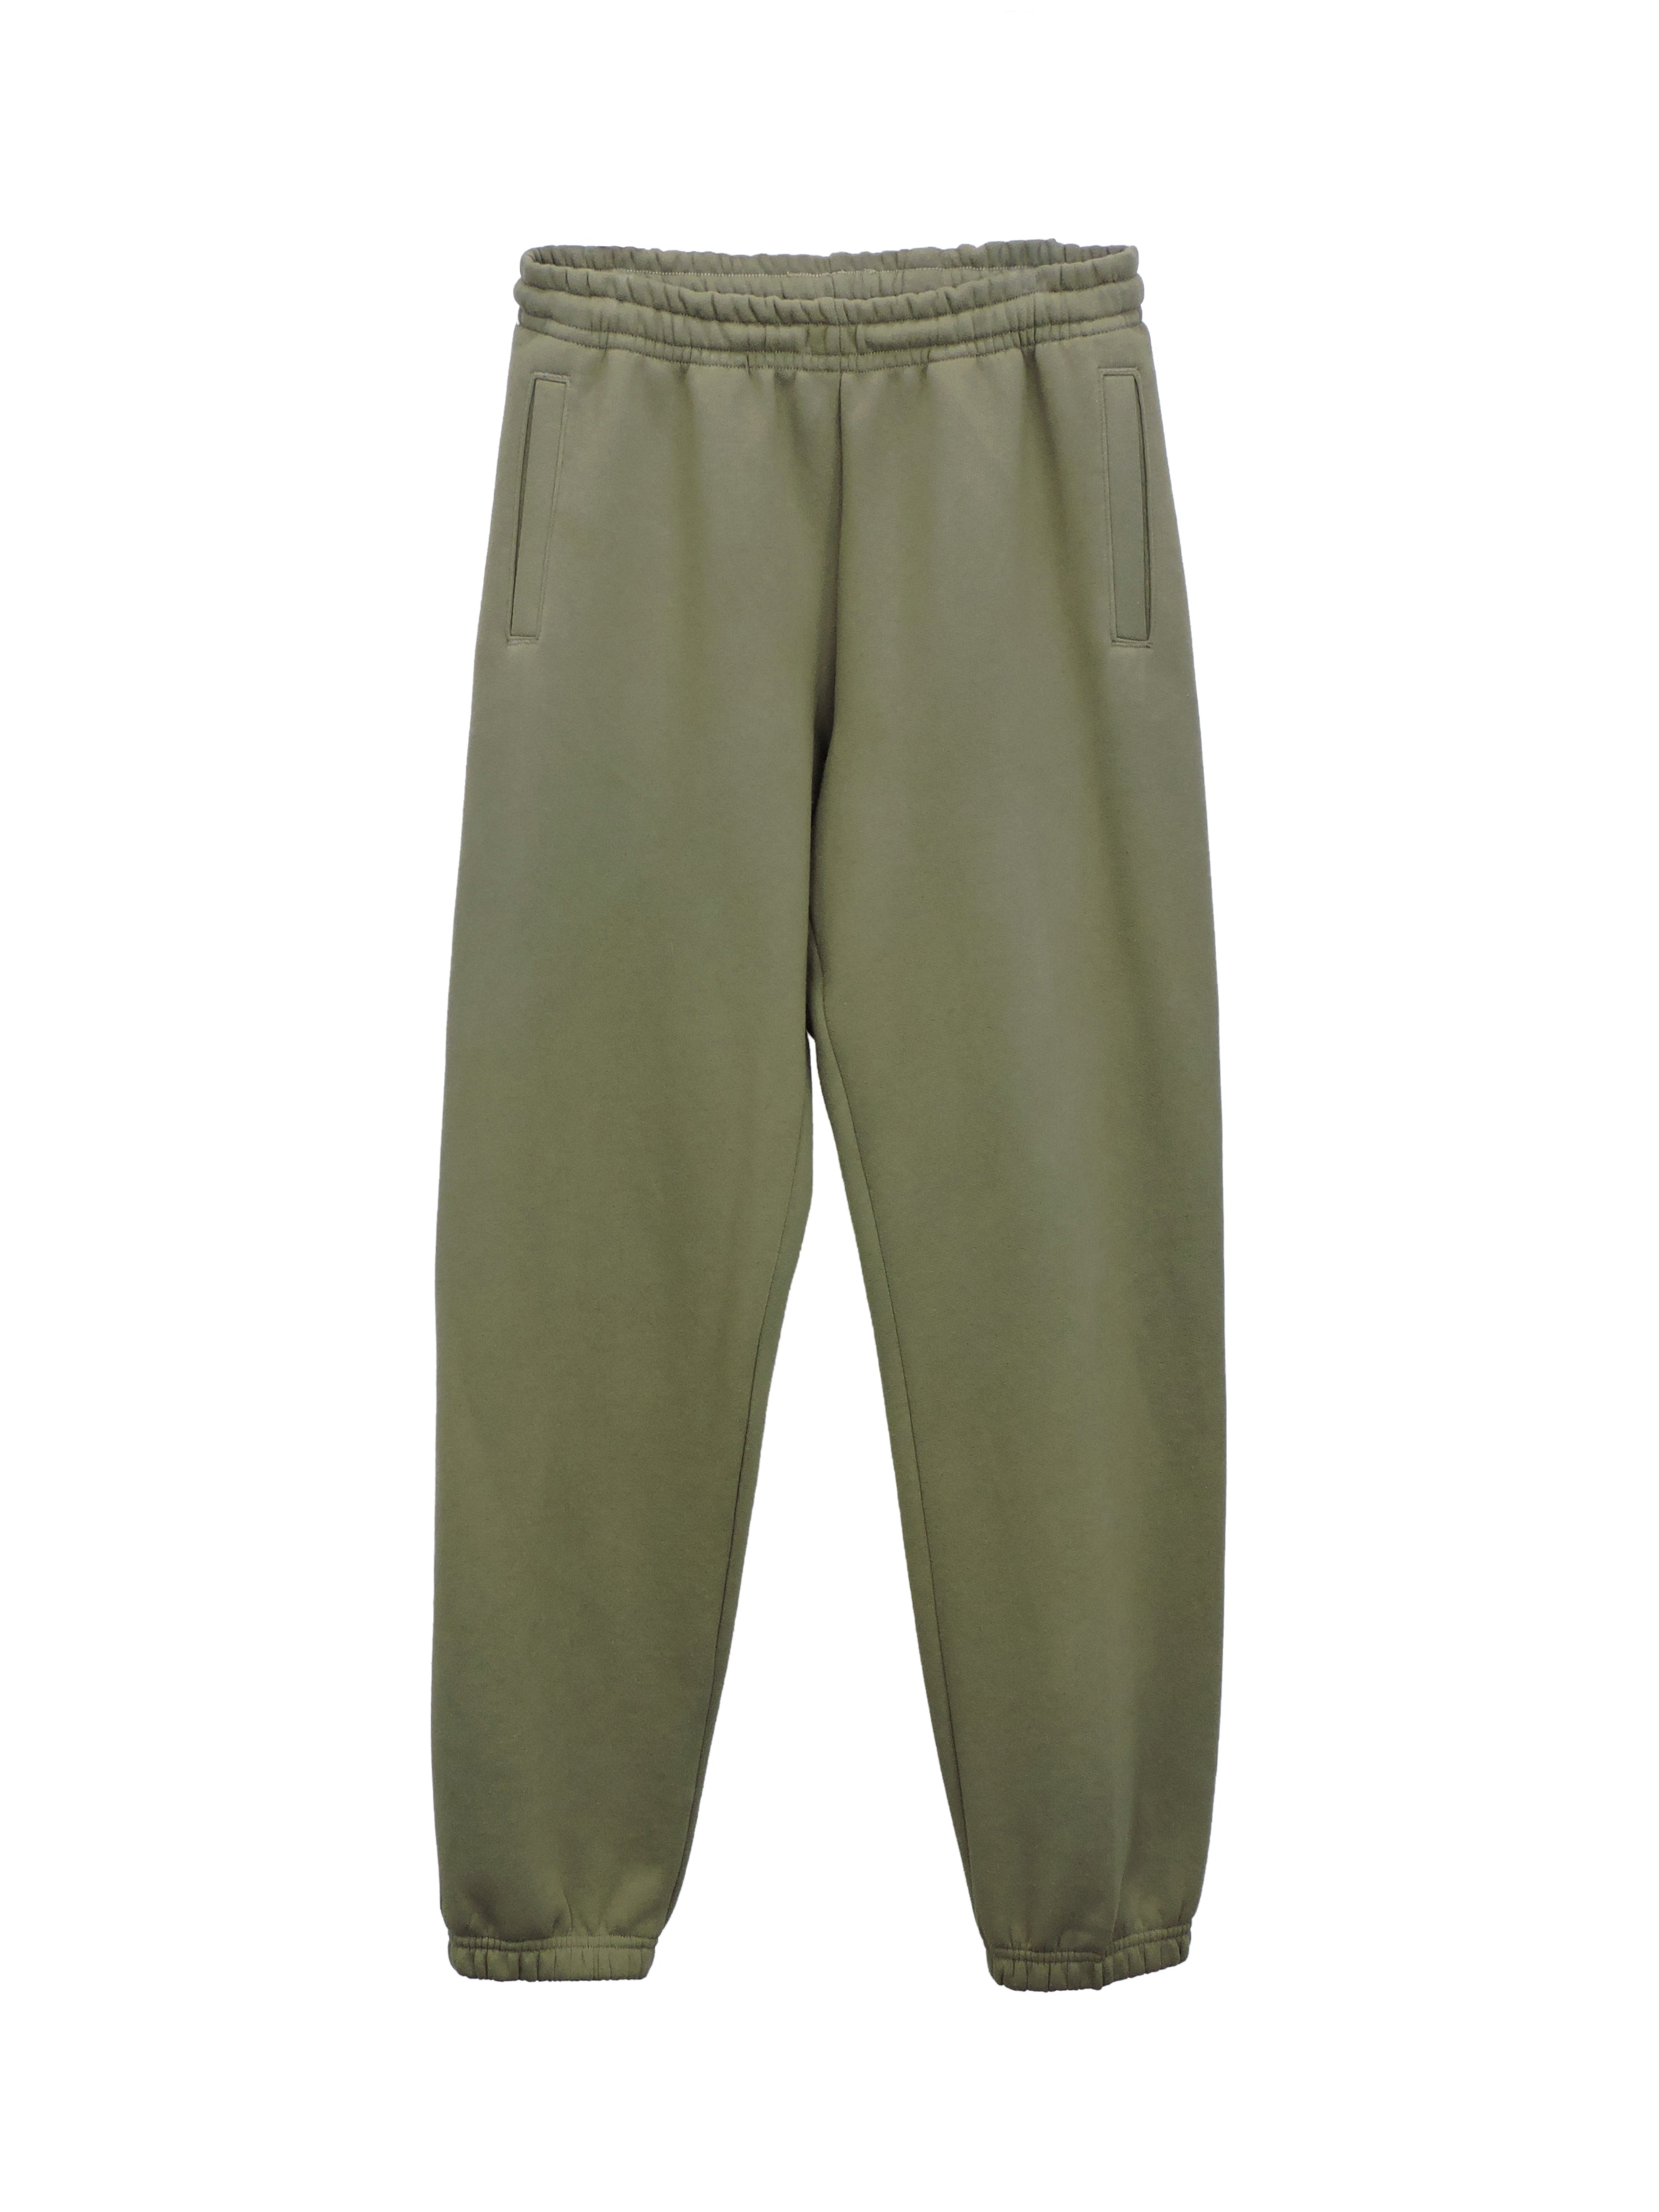 blank moss green - PRINTABLE SWEATPANT